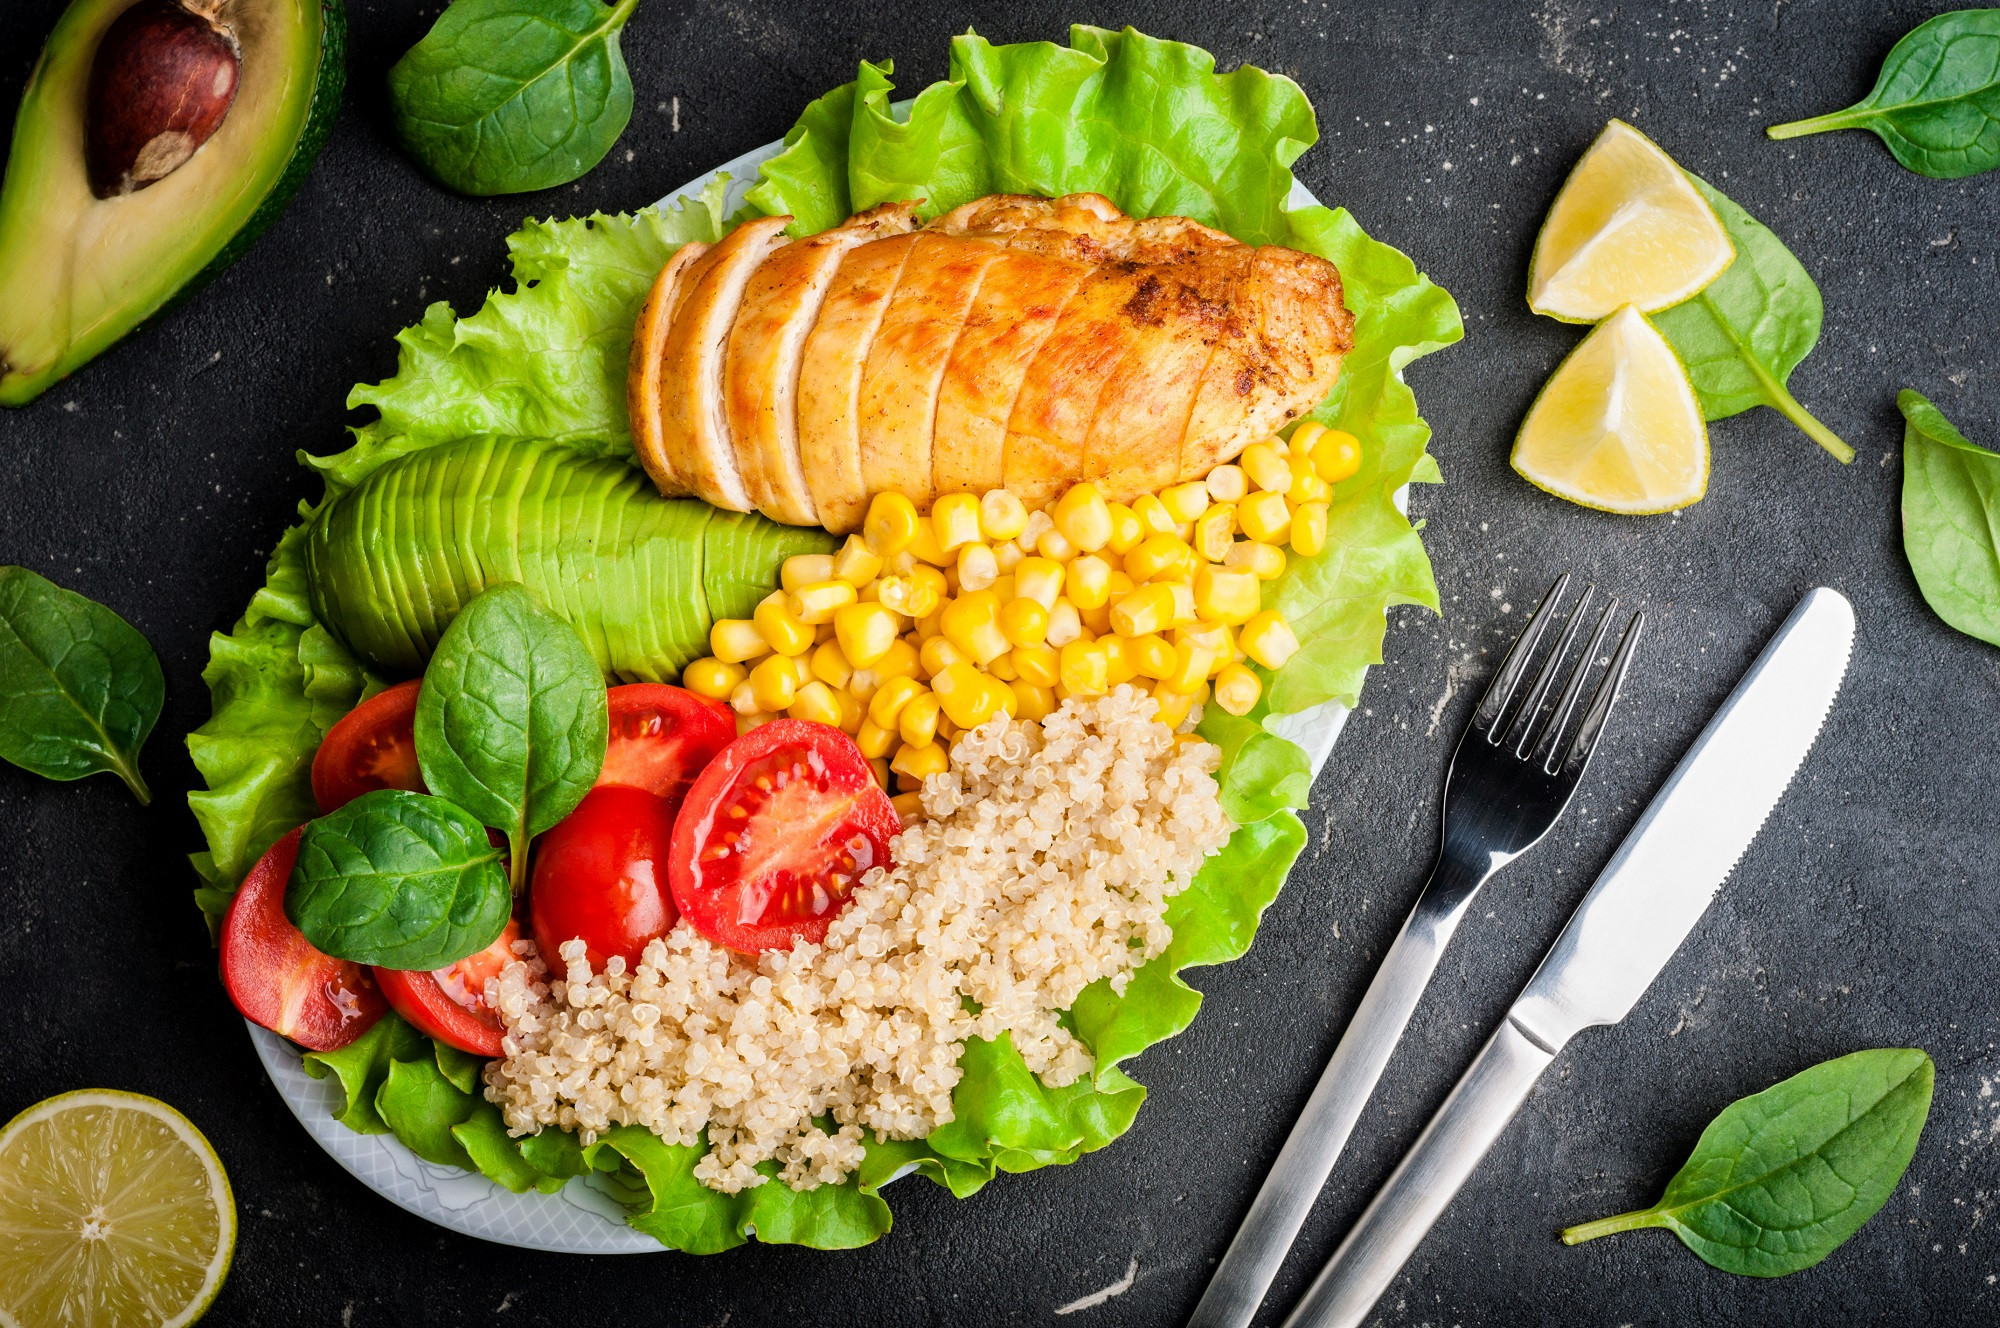 Low Carb Low Fat Diet  Low Carb Diet May Reduce HbA1c More Than Low Fat Diet in